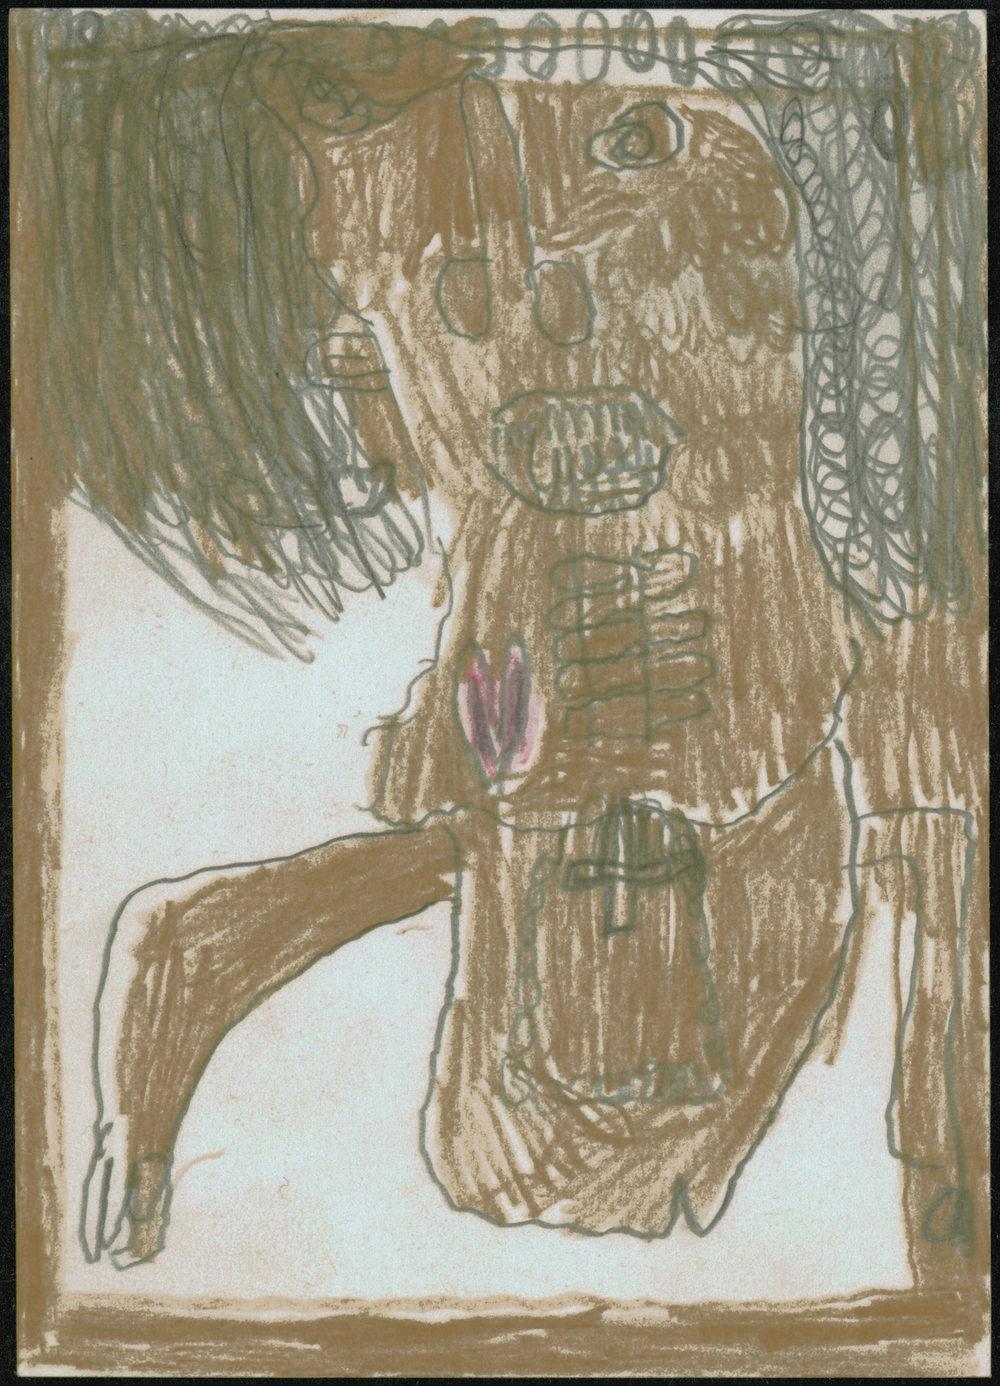 Philipp Schöpke (Austrian, 1921-1998).  Standing Figure with Cross , 1978. Pencil and crayon on paper, 5 ¾ x 4 1/8 in. Intuit: The Center of Intuitive and Outsider Art, gift of John M. MacGregor in honor of Robert A. Roth, 2004.7.8